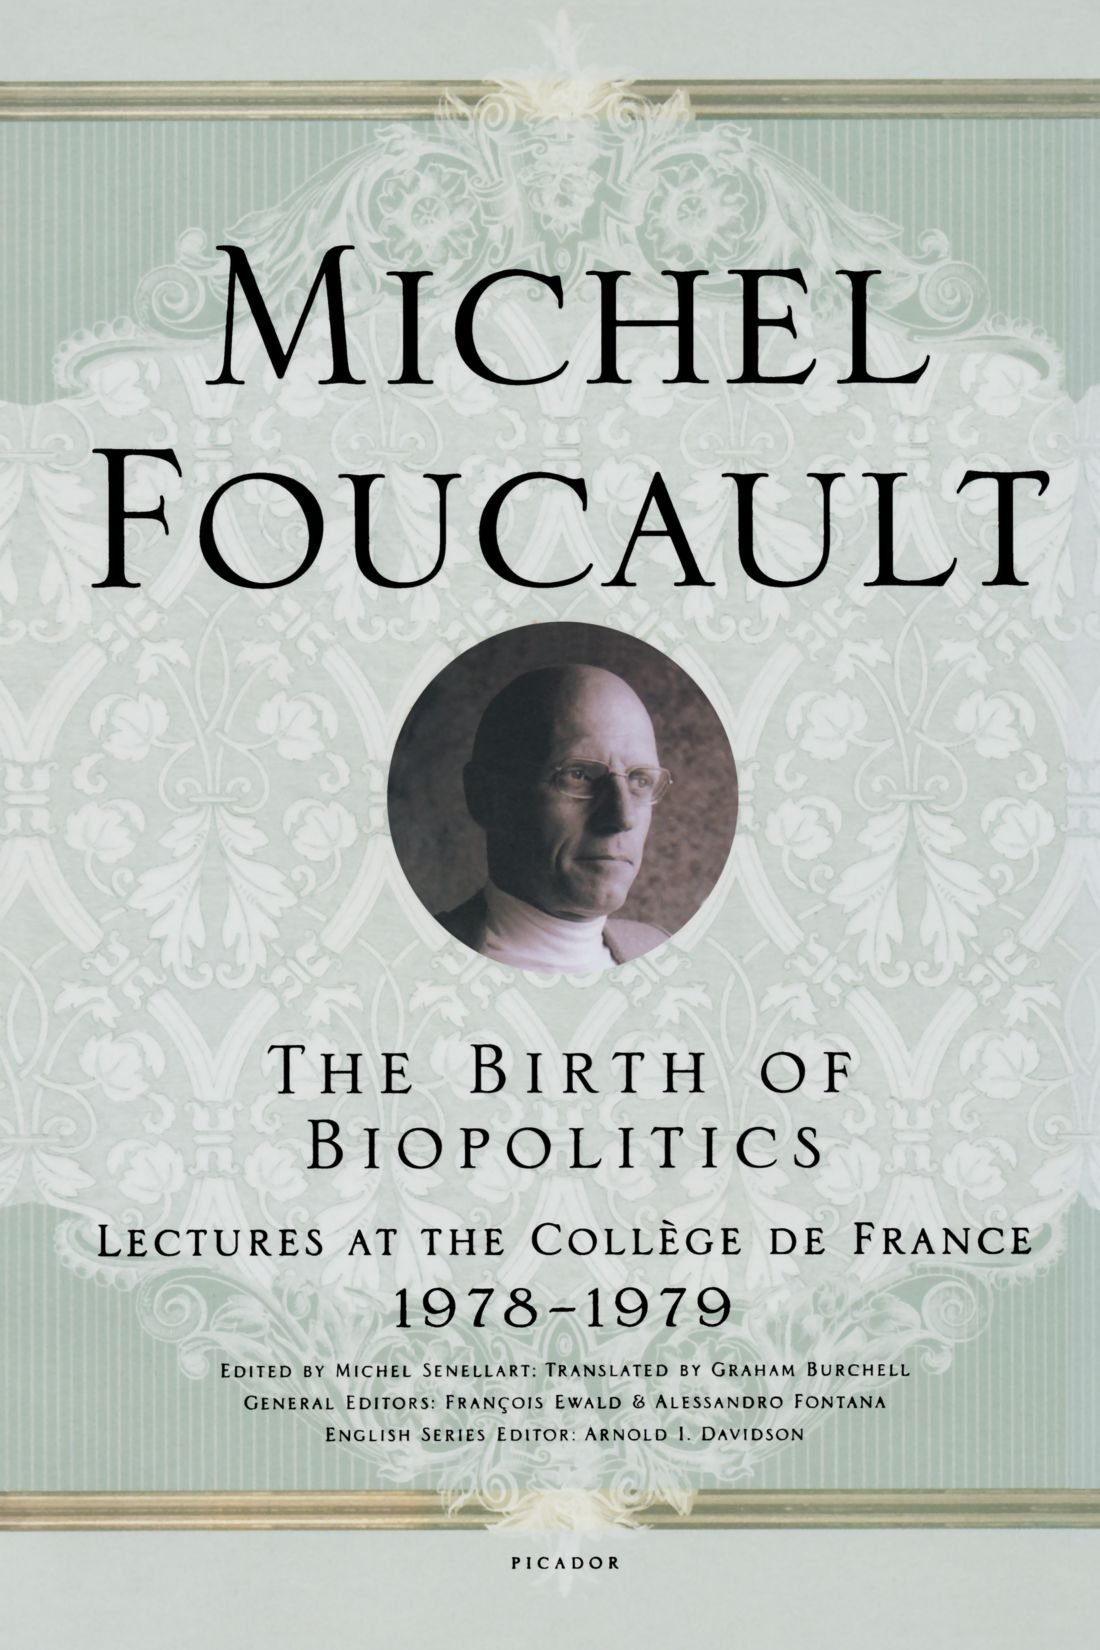 Download The Birth of Biopolitics: Lectures at the Collège de France, 1978--1979 (Lectures at the College de France) pdf